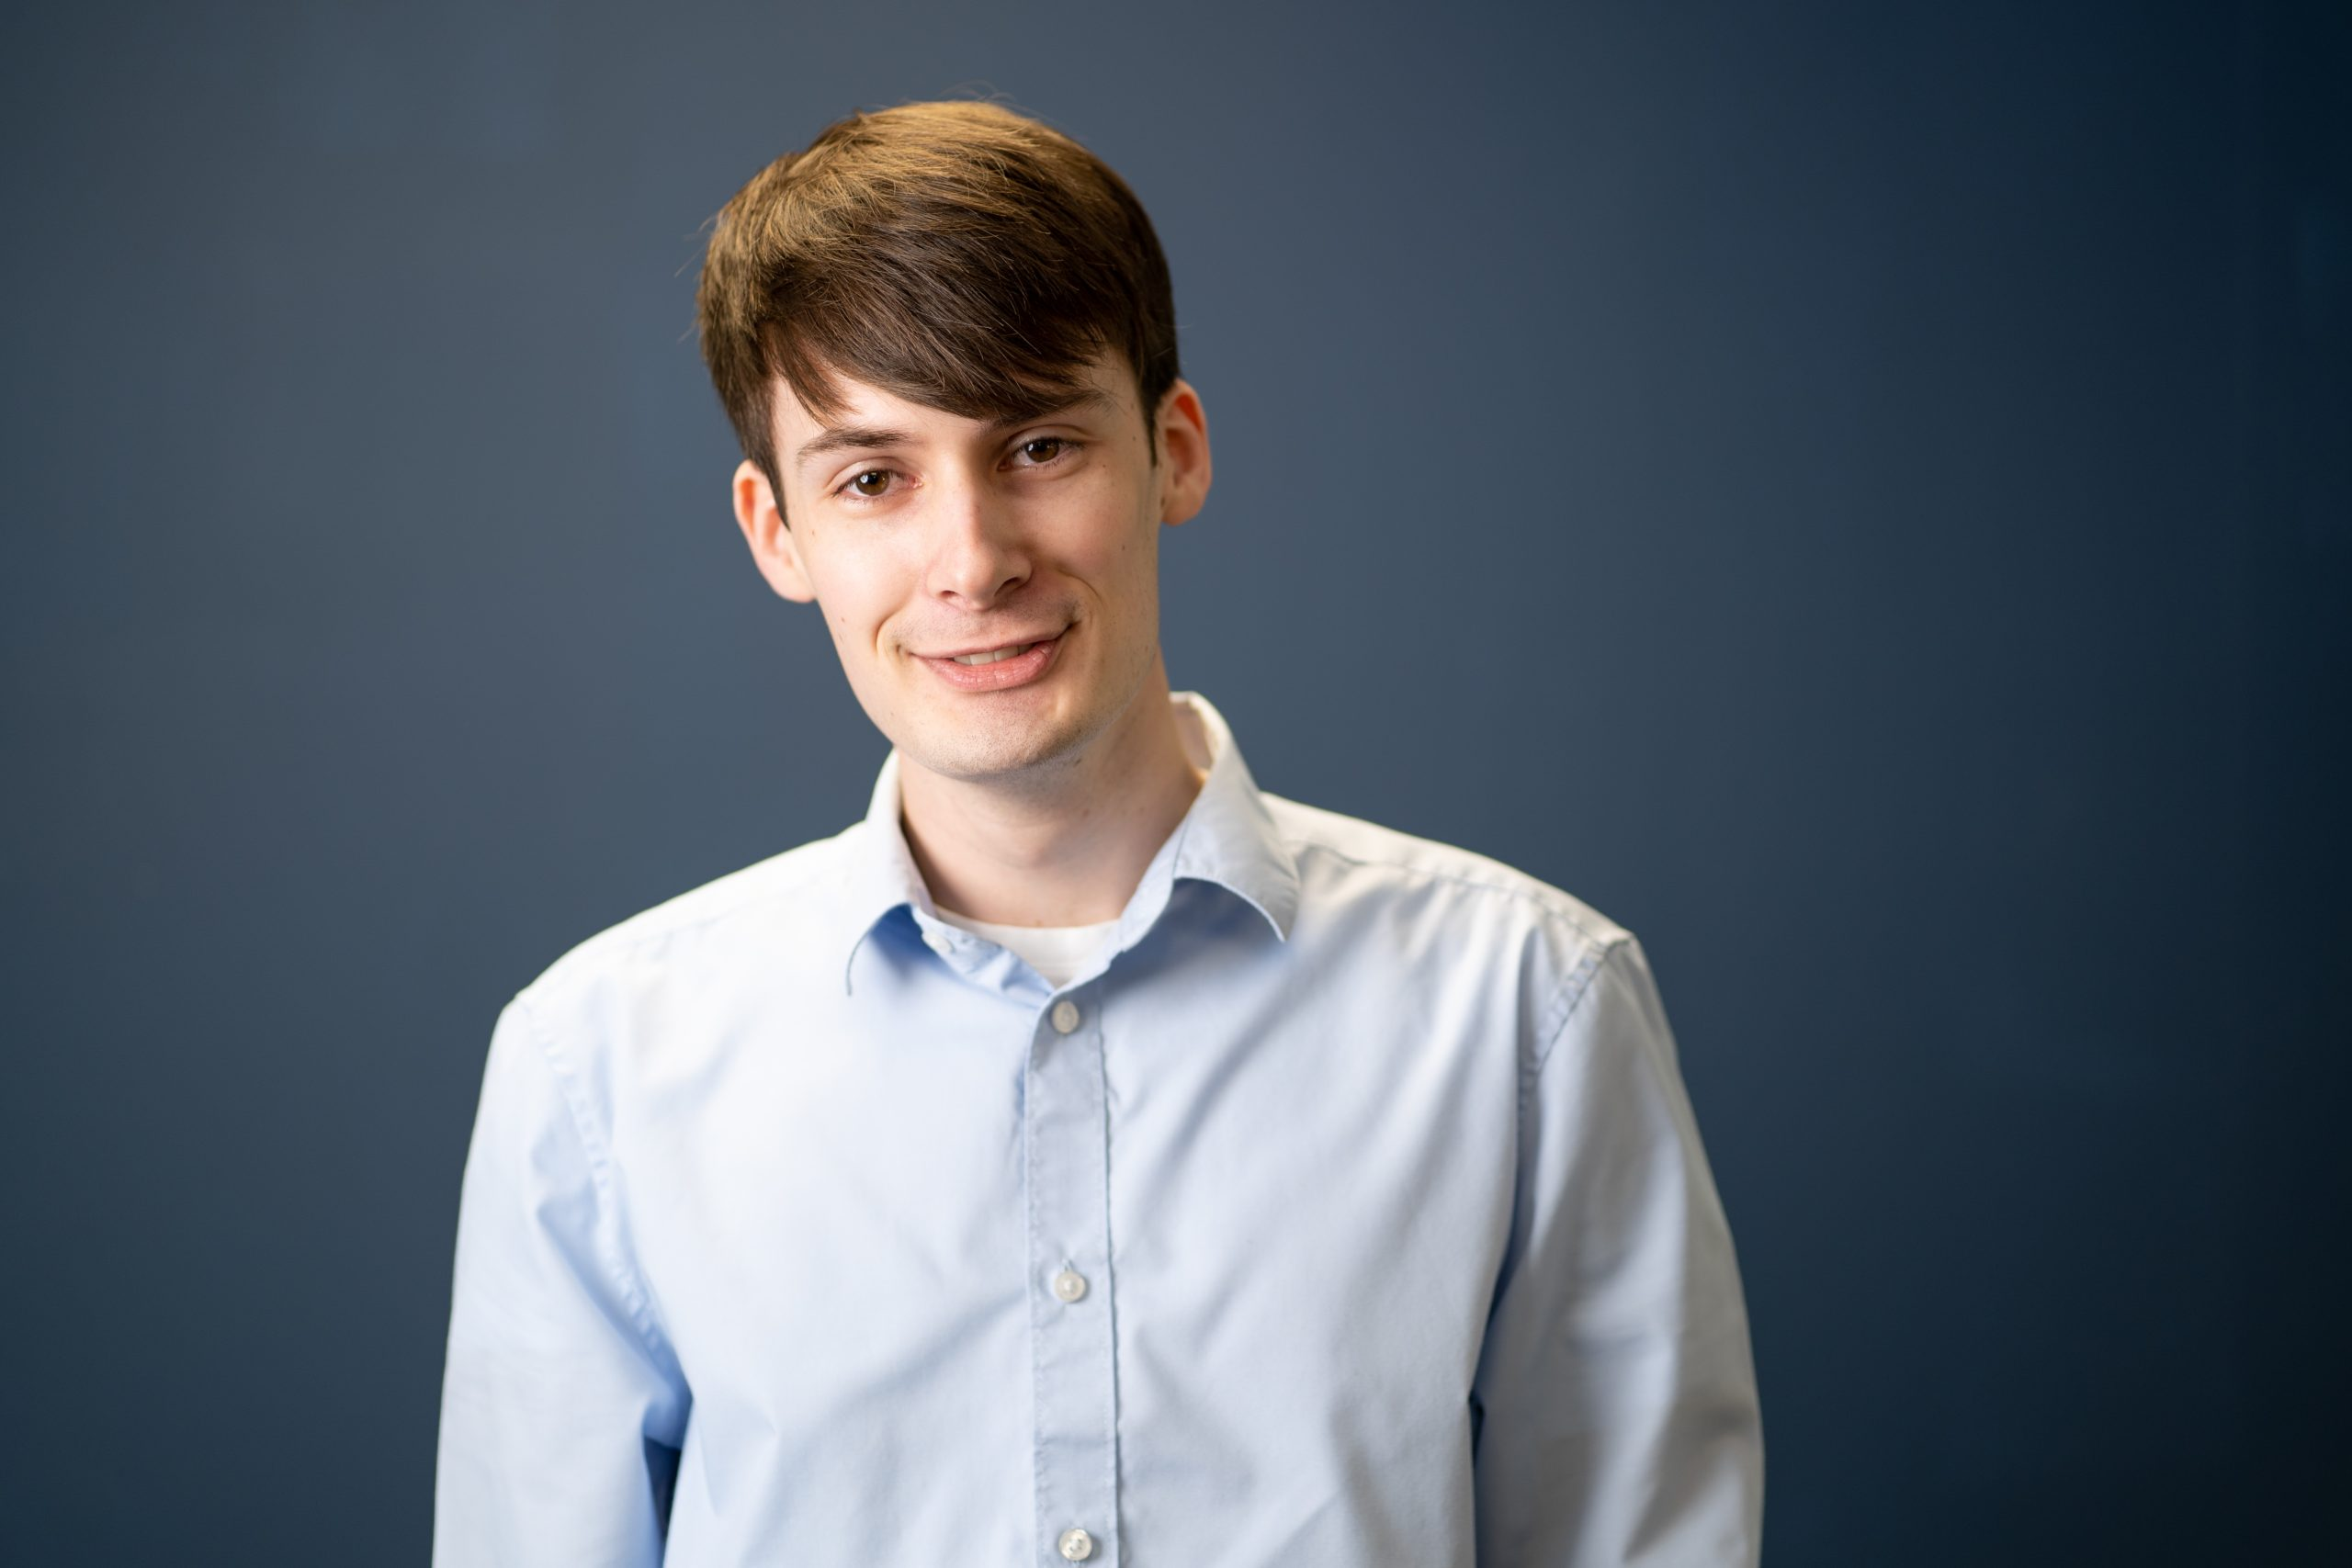 https://www.intelligencefusion.co.uk/wp-content/uploads/2021/08/Declan-Claughan-03030-2-scaled.jpg